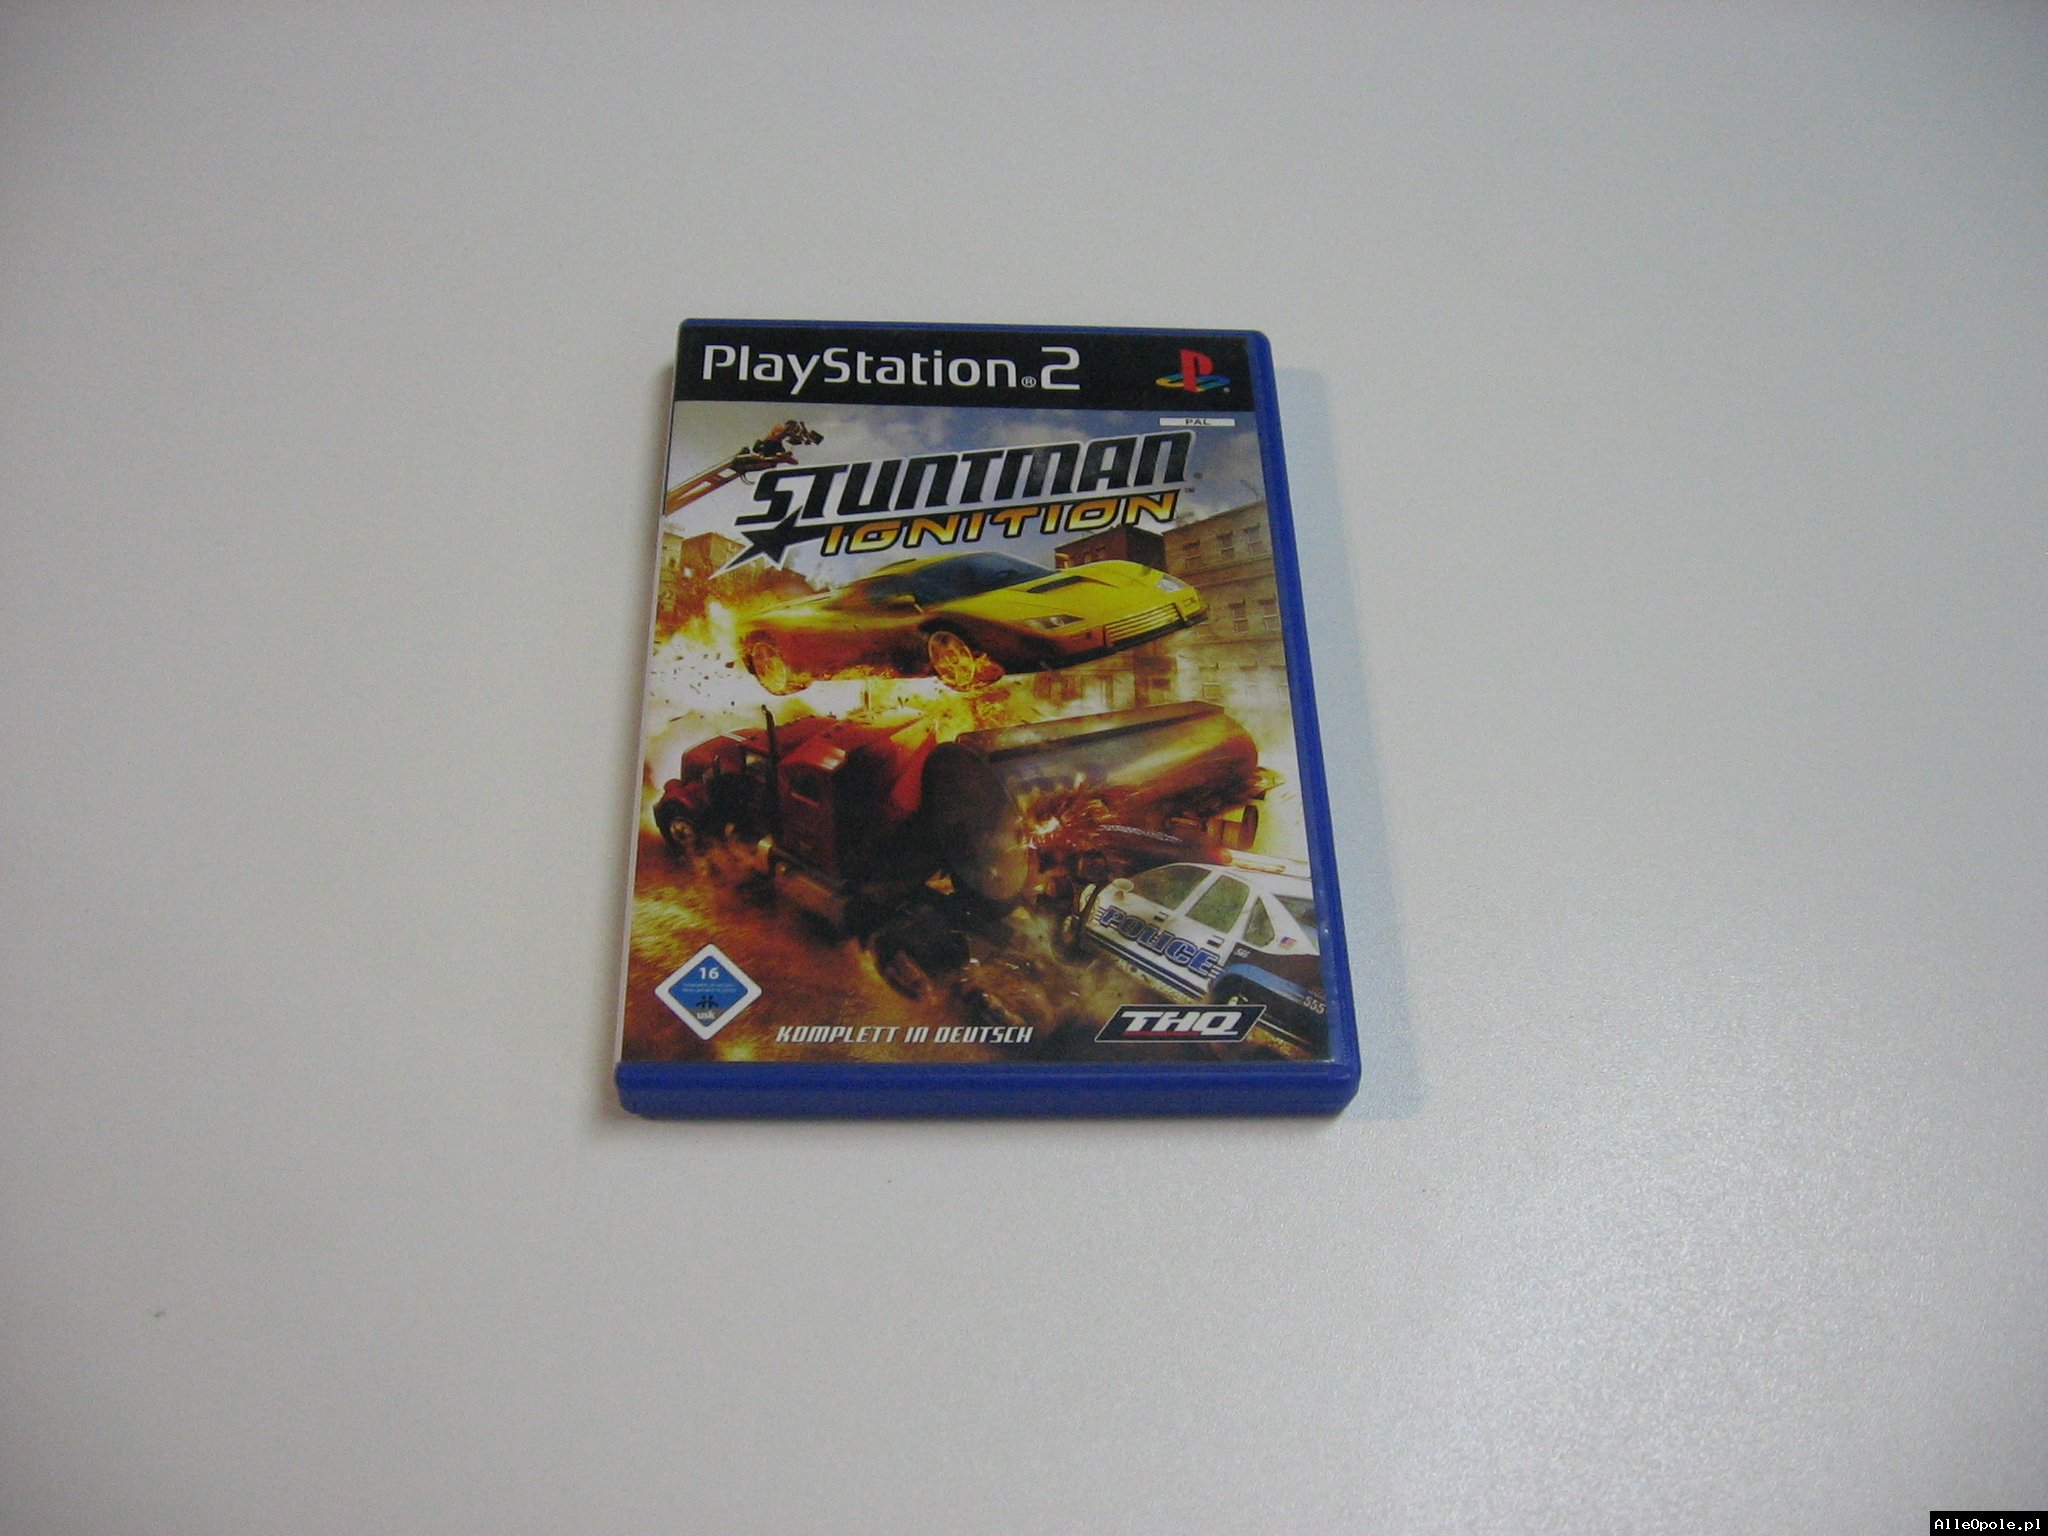 Stuntman Ignition - GRA Ps2 - Opole 0612